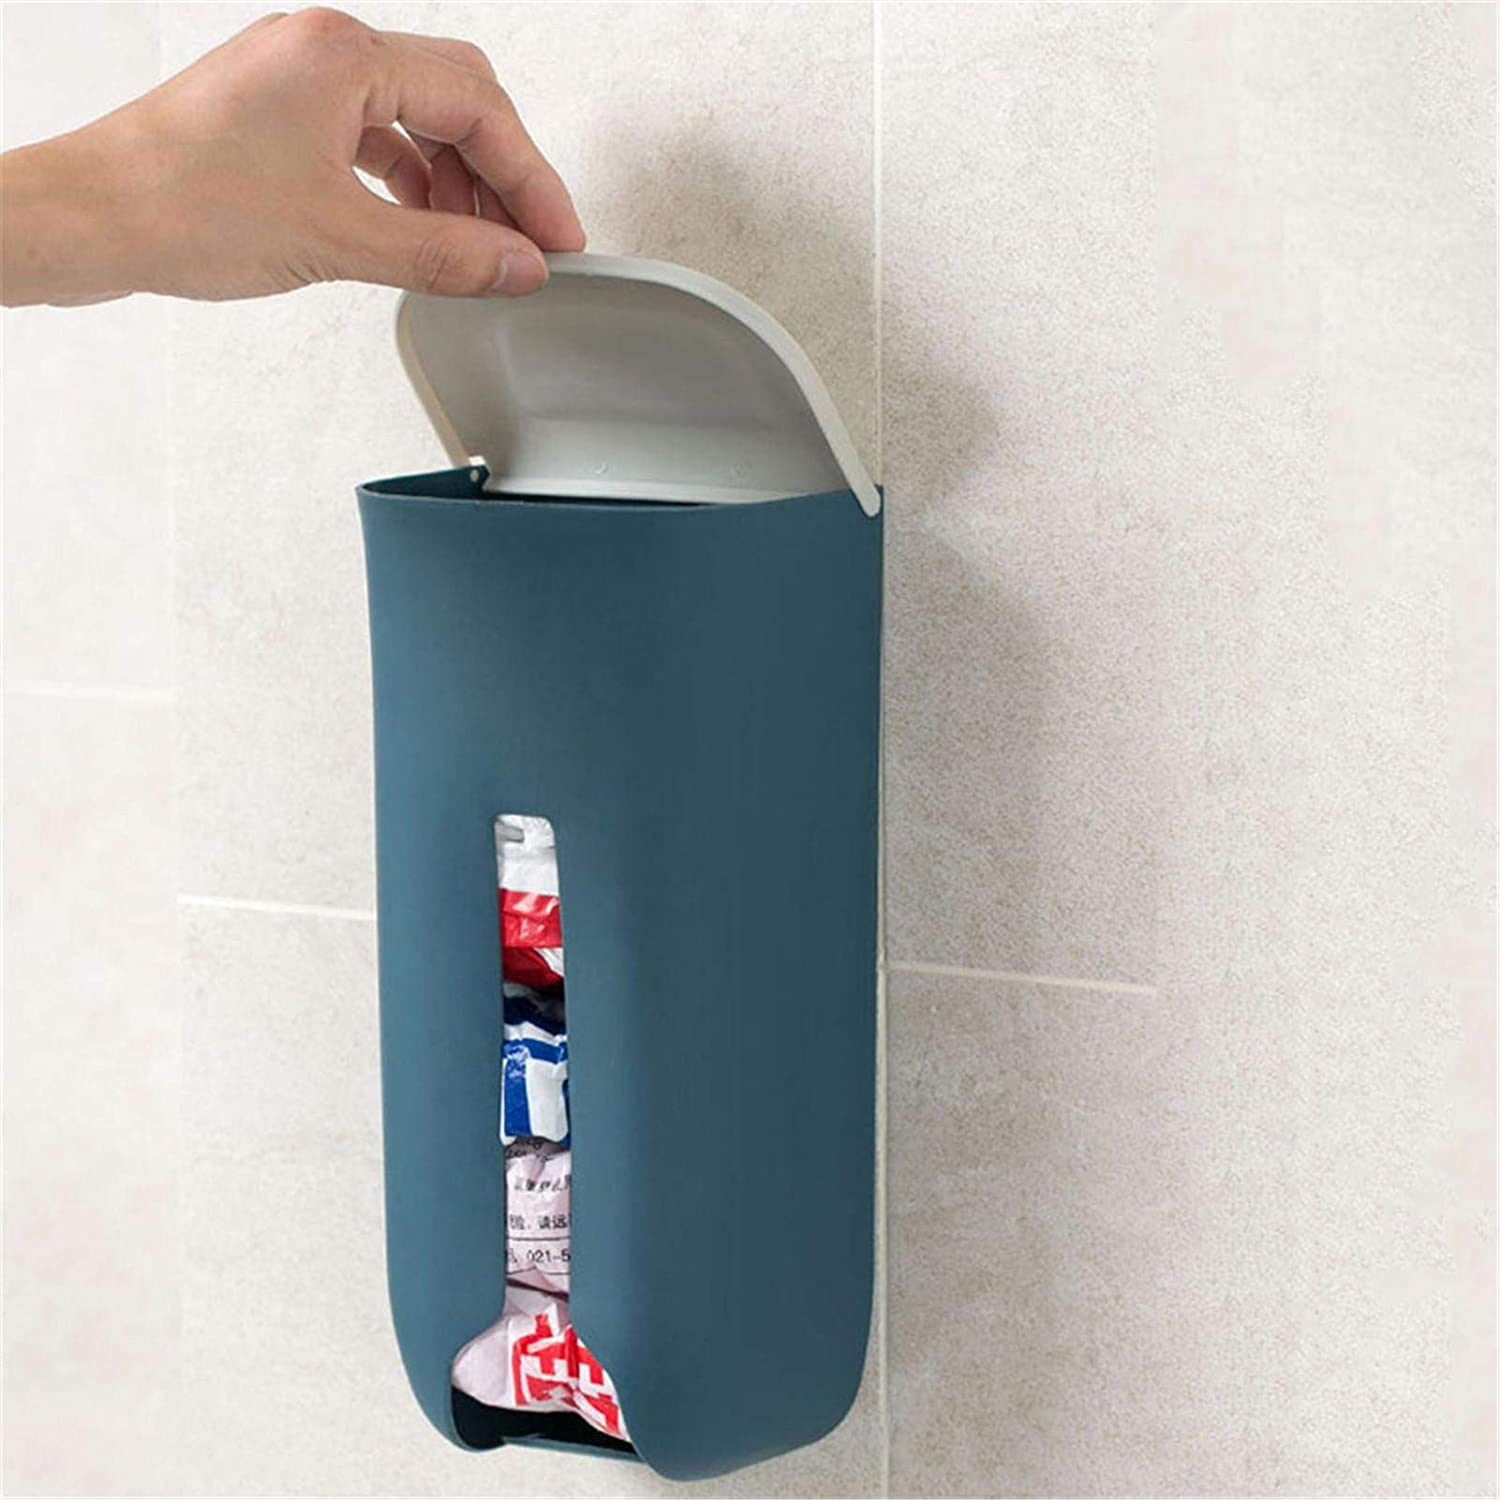 AIHOME Grocery Bag Storage Holder Wall Mount Grocery Plastic Bag Holder Kitchen Grocery Plastic Bag Holder Bag Dispenser with Extra-Wide /& Easy-Access Openings Wall Mount Bag Saver